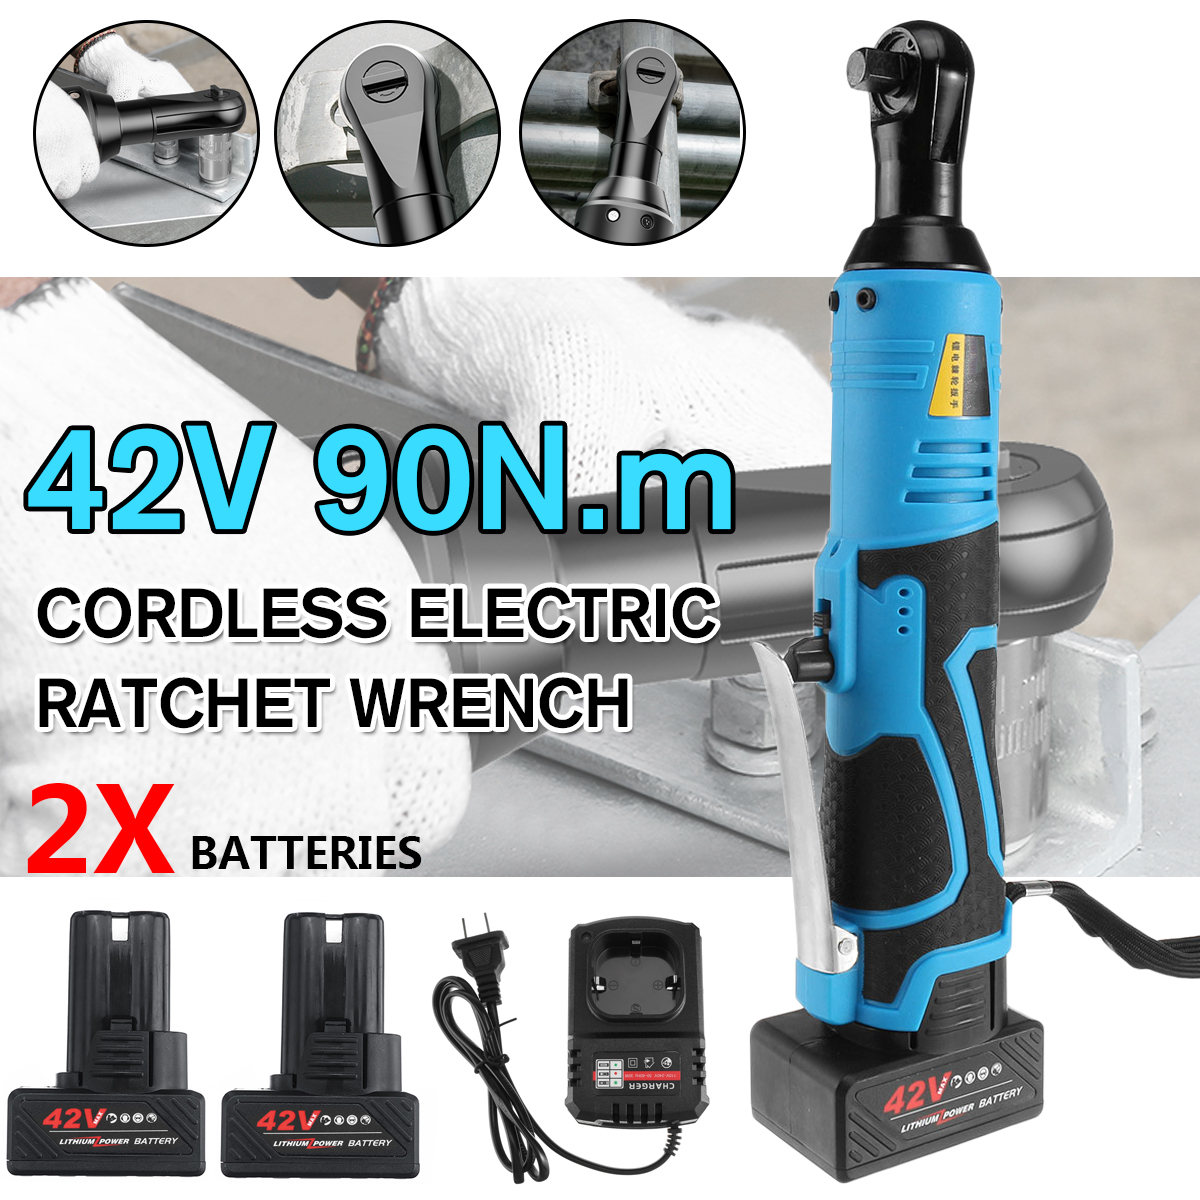 """Electric Wrench 3/8"""" Cordless Ratchet 42V Rechargeable Scaffolding 90N.m Right Angle Wrench Tool with 1/2 Battery Charger Kit Electric Wrenches    - AliExpress"""